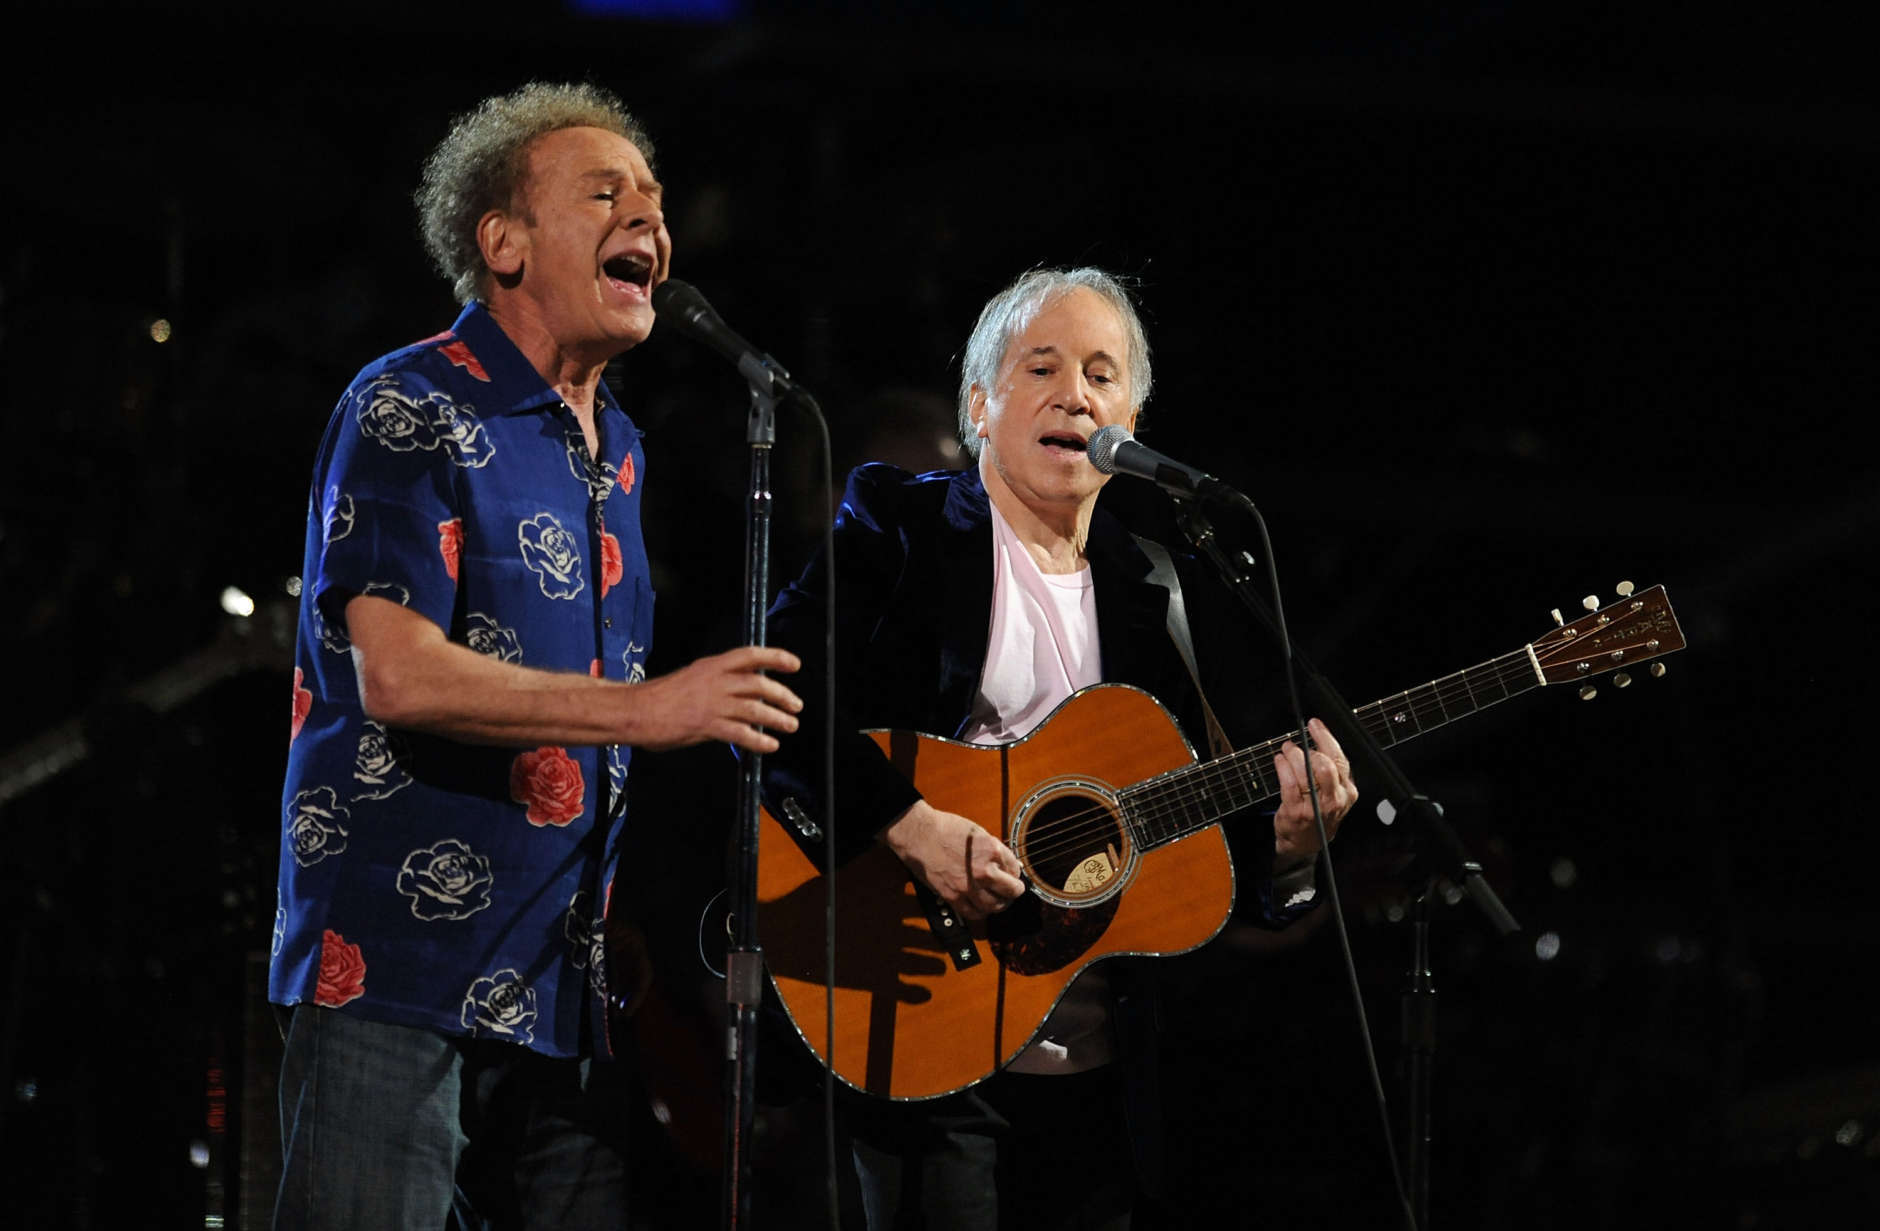 NEW YORK - OCTOBER 29:  Art Garfunkel and Paul Simon perform onstage at the 25th Anniversary Rock & Roll Hall of Fame Concert at Madison Square Garden on October 29, 2009 in New York City.  (Photo by Stephen Lovekin/Getty Images)